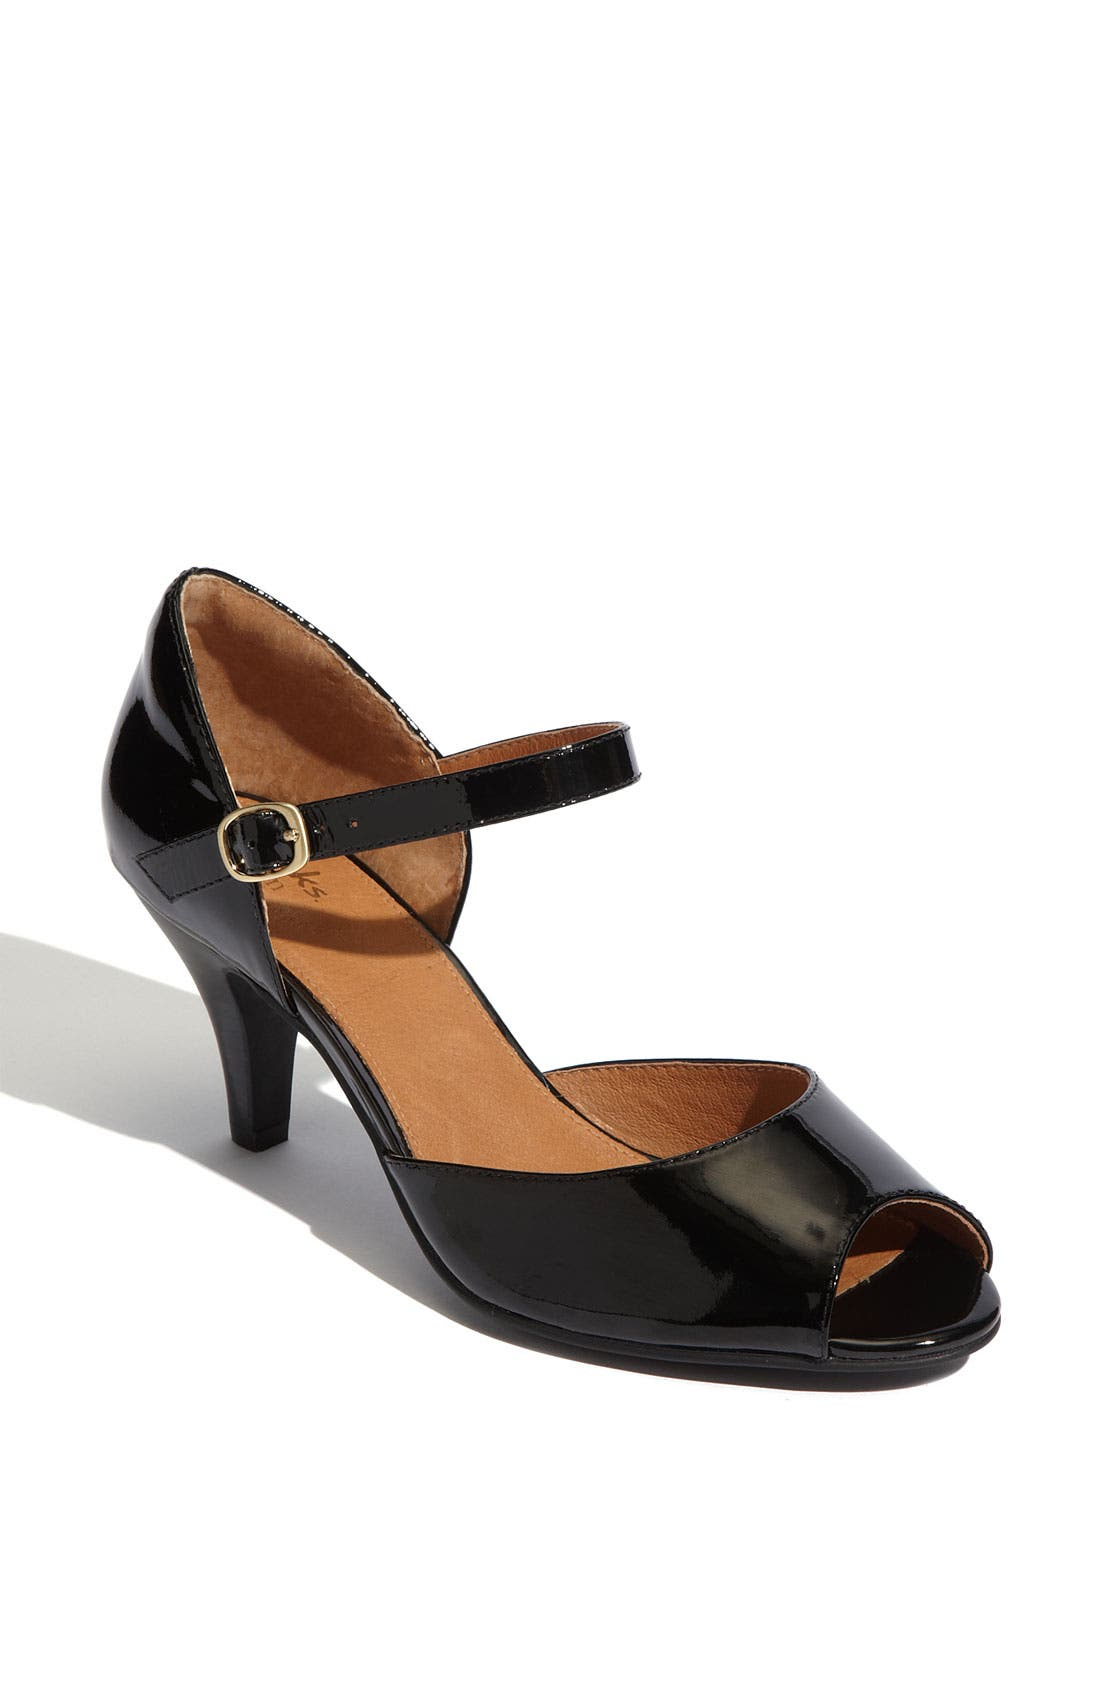 Alternate Image 1 Selected - Clarks® Artisan Collection 'Cynthia Eleve' Pump